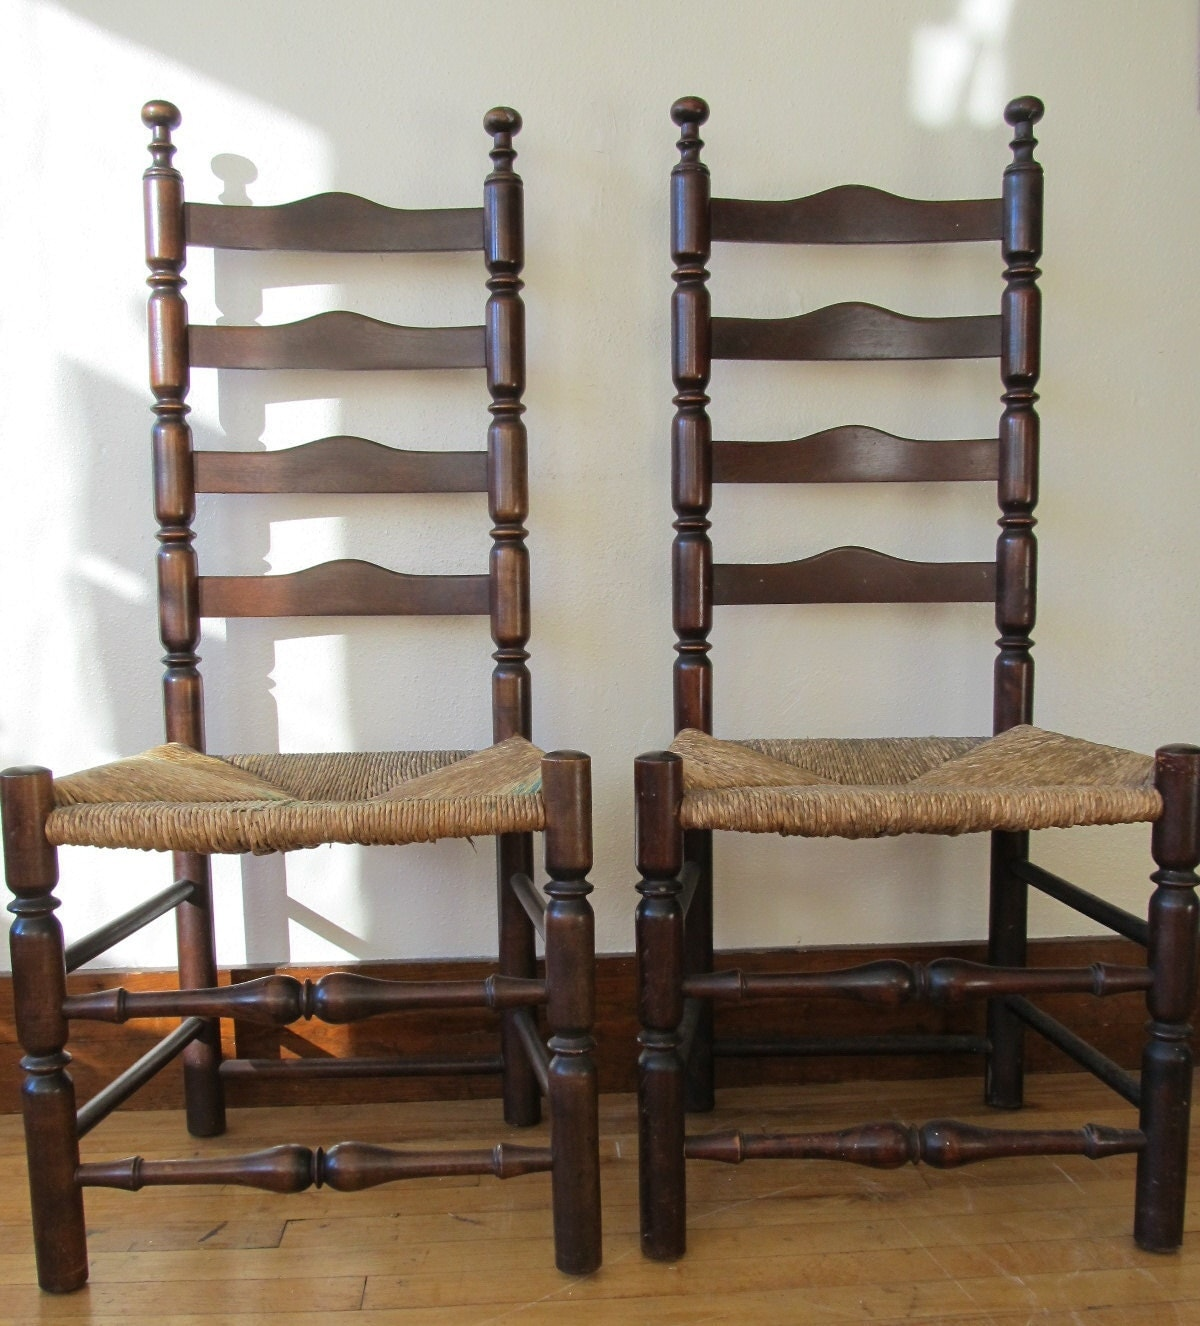 Pair of antique ladder back chairs Ladder back chairs